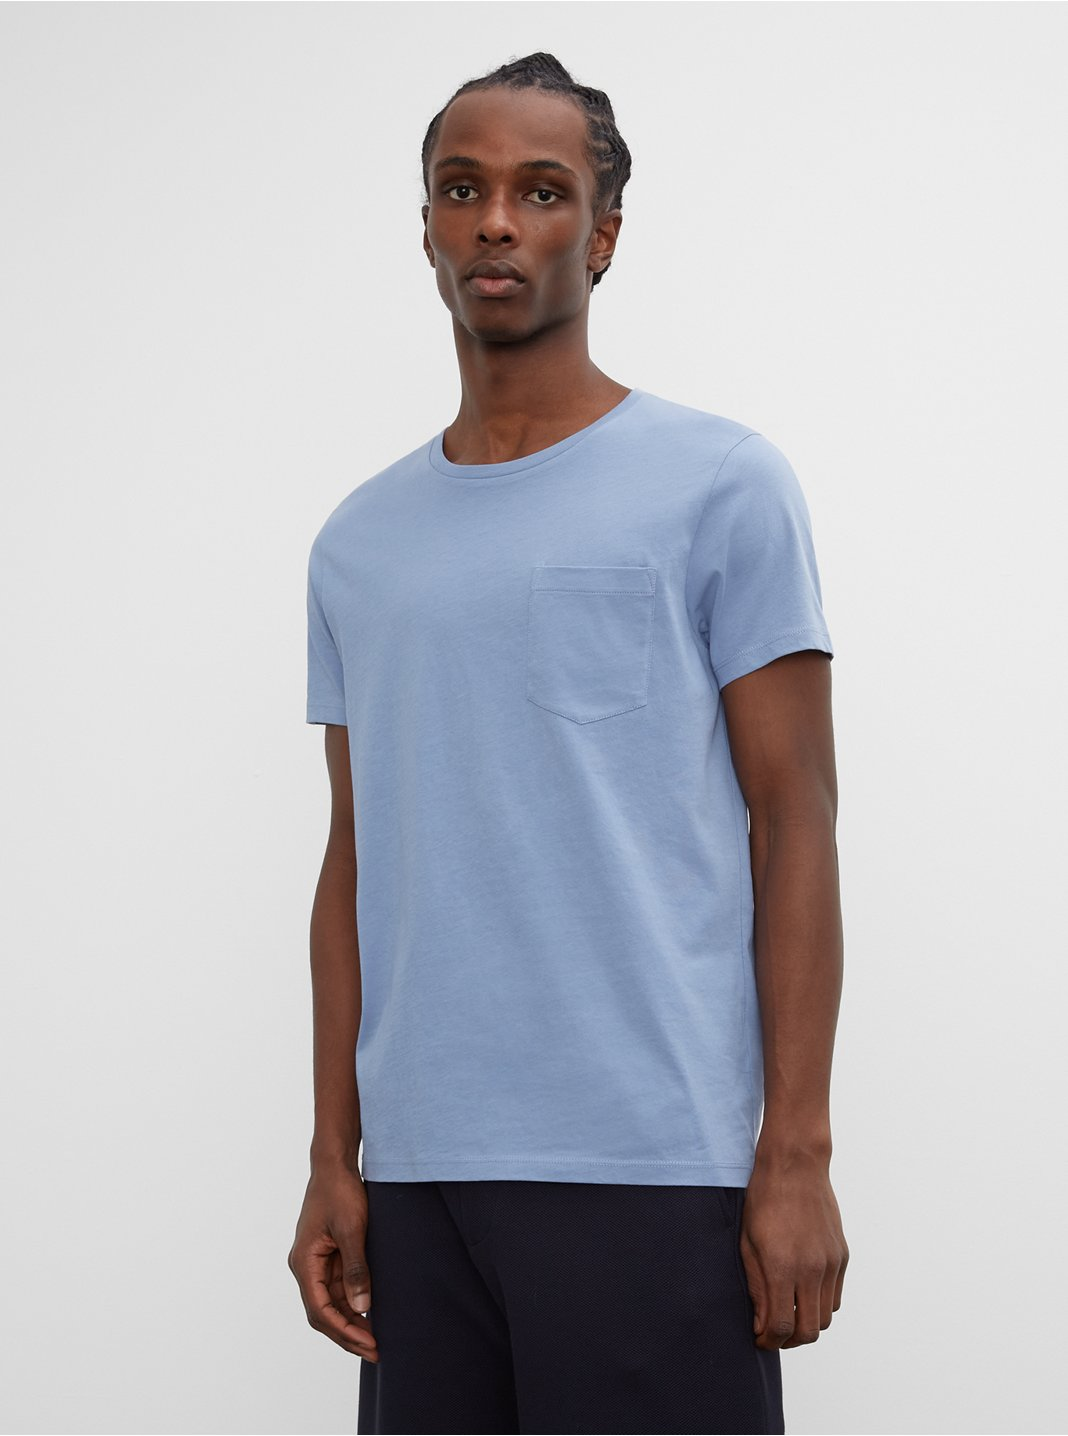 Williams Garment Dyed Crew